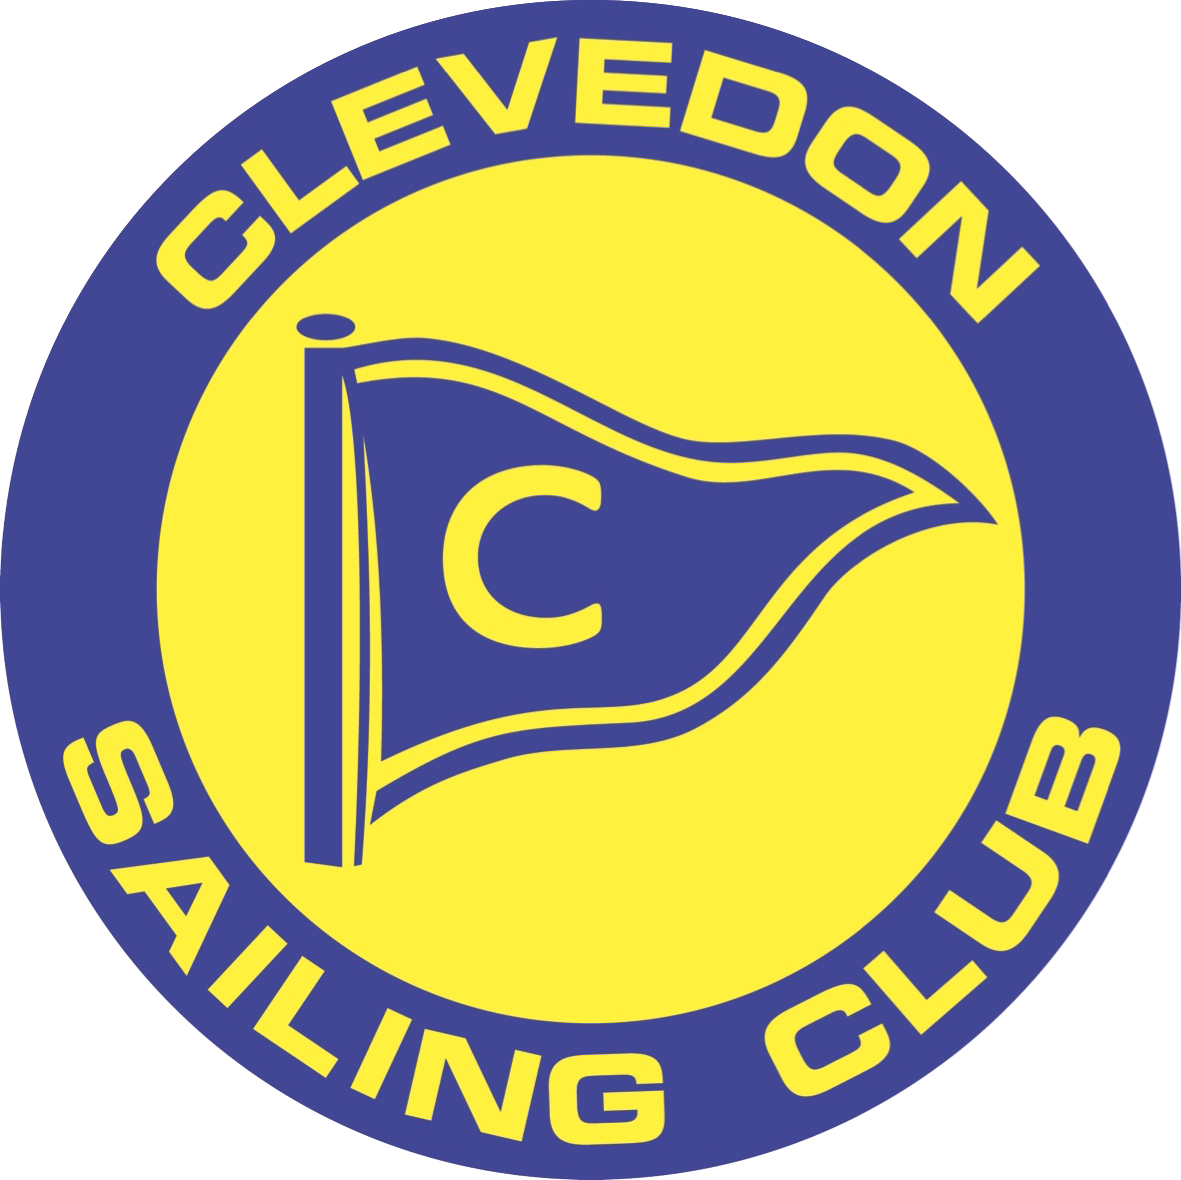 Clevedon Sailing Club